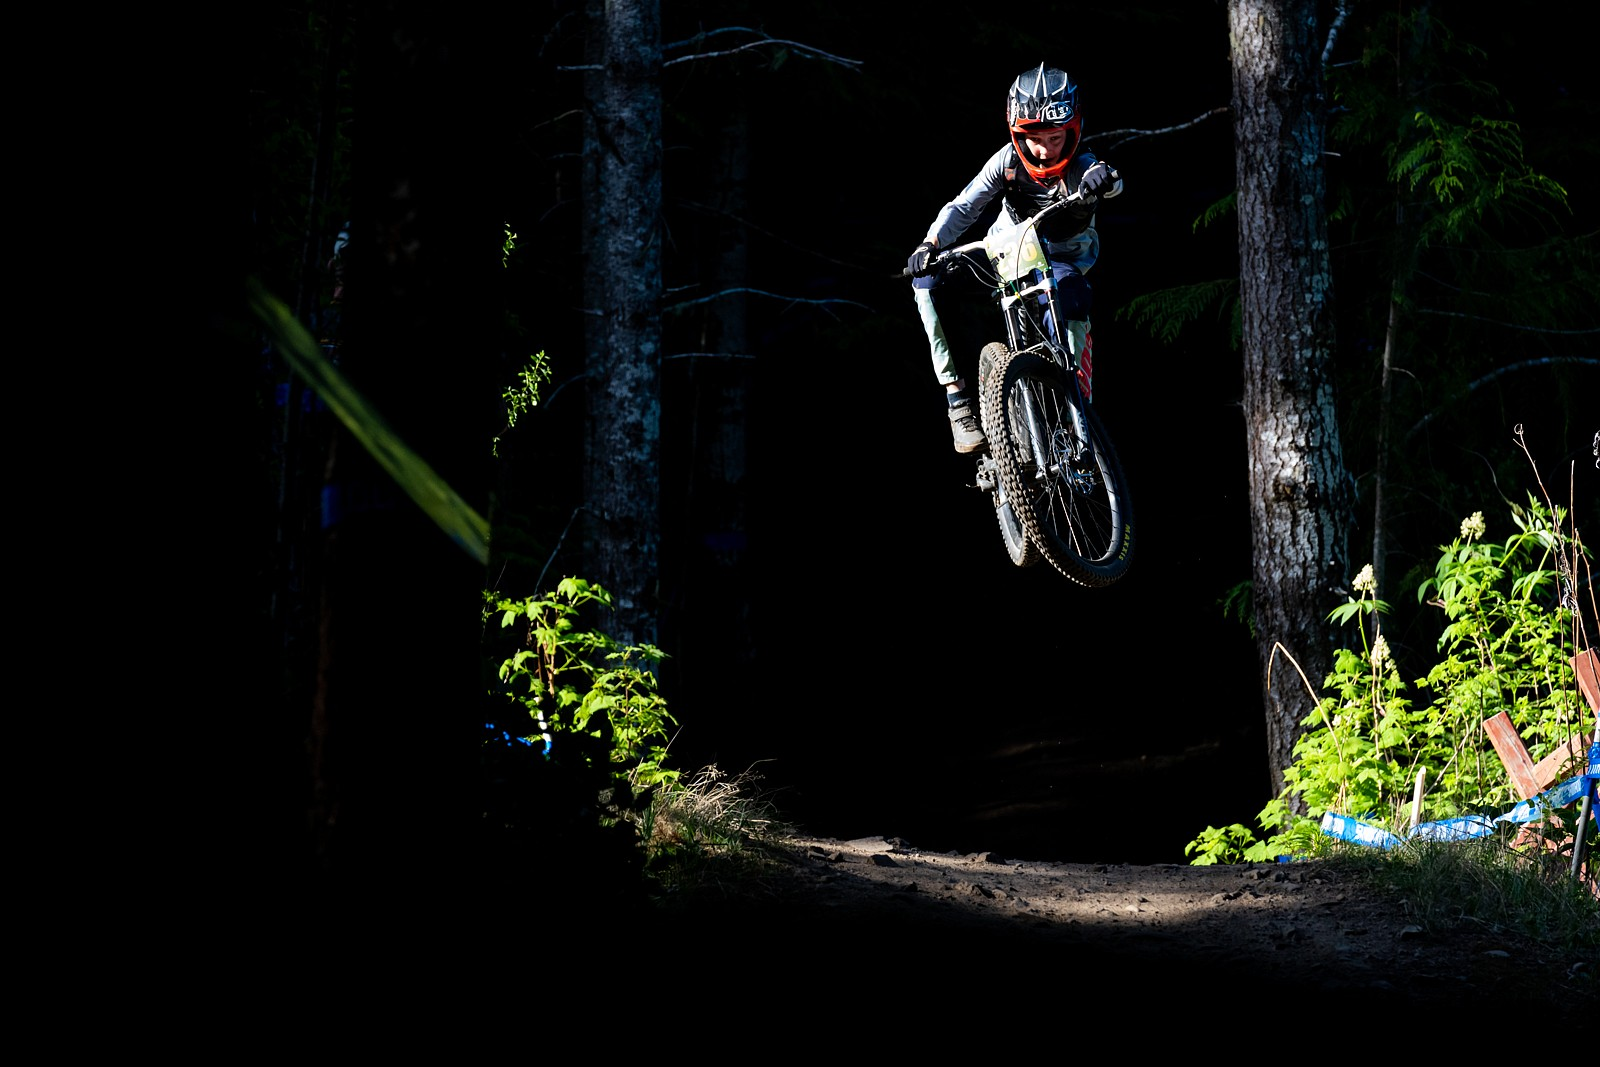 Charlie Connell - Zuestman - Mountain Biking Pictures - Vital MTB